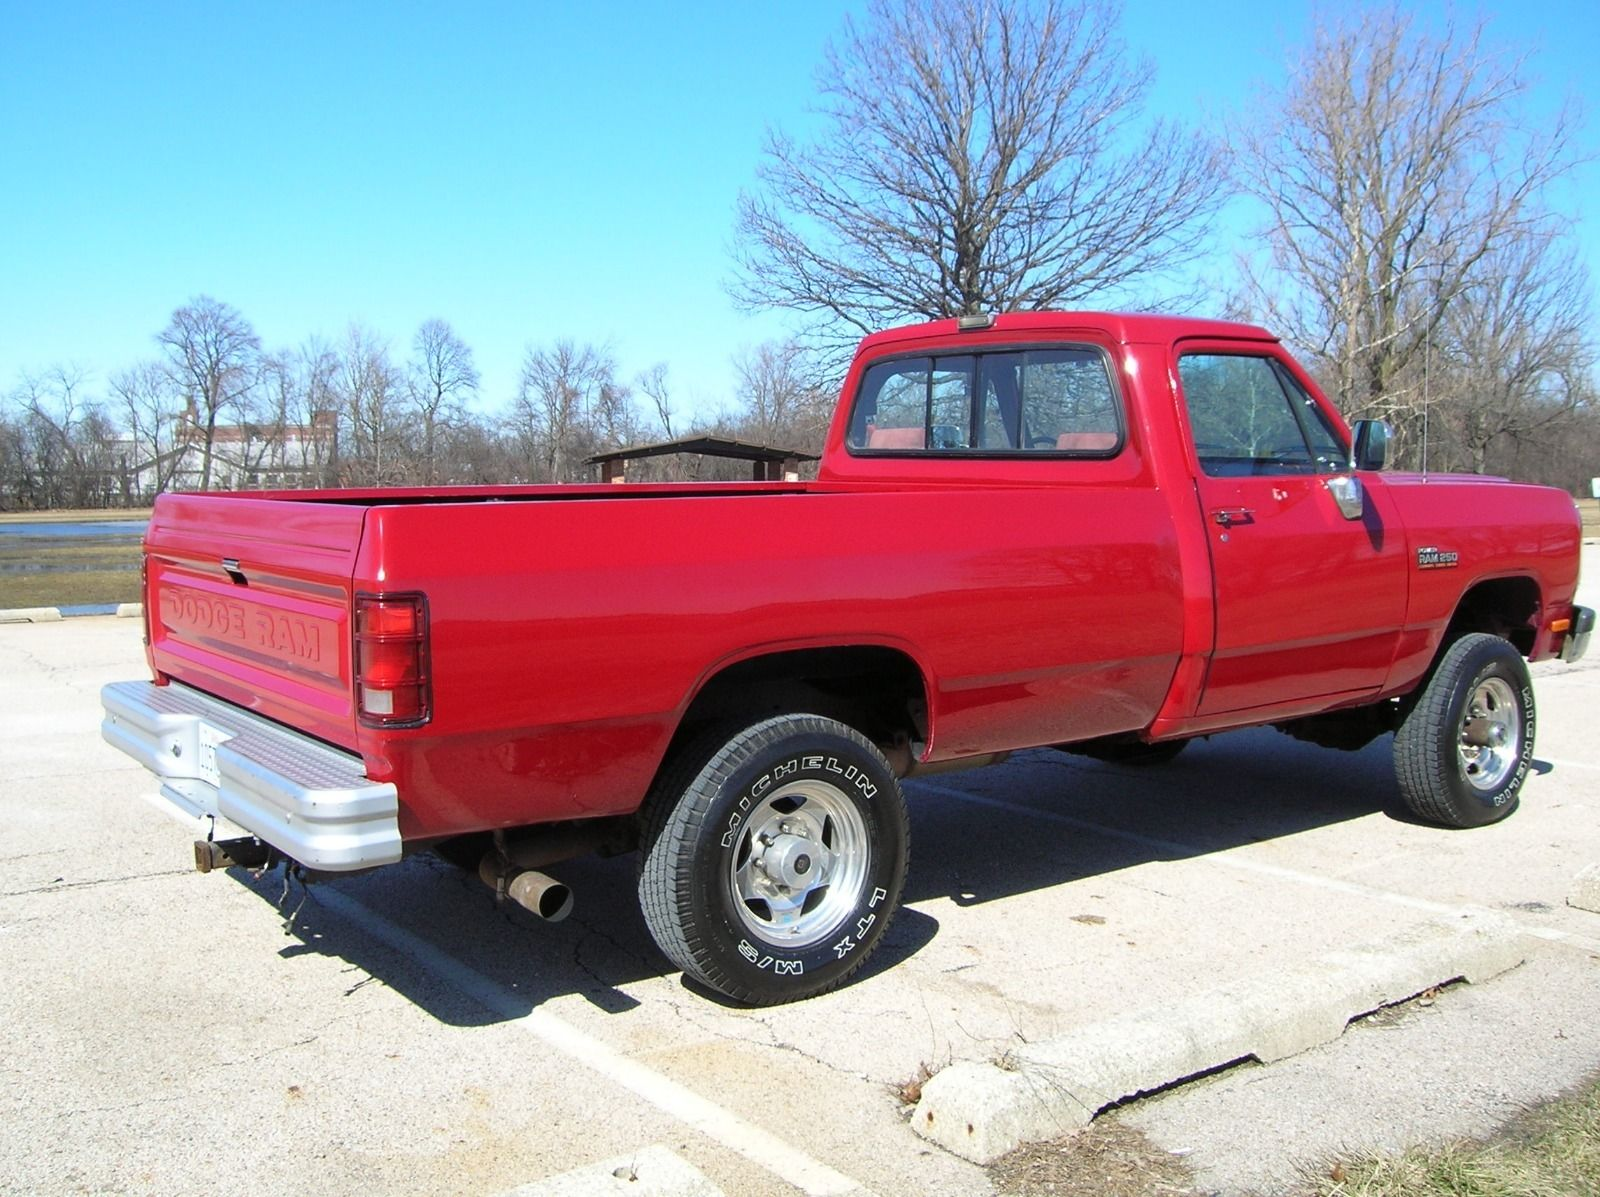 Daily Turismo Cummins Diesel Powaaaaaaaaa 1991 Dodge Ram. Online Graduate Degrees In History. Ultrasound Technician Courses. Articles Of Incorperation Plumbers In Austin. Credit Card Processing Sales. Recovery Houses In Philadelphia. Long Term Health Insurance Pros And Cons. Protecting Identity Online Plumber Seattle Wa. Life Insurance For People With Diabetes